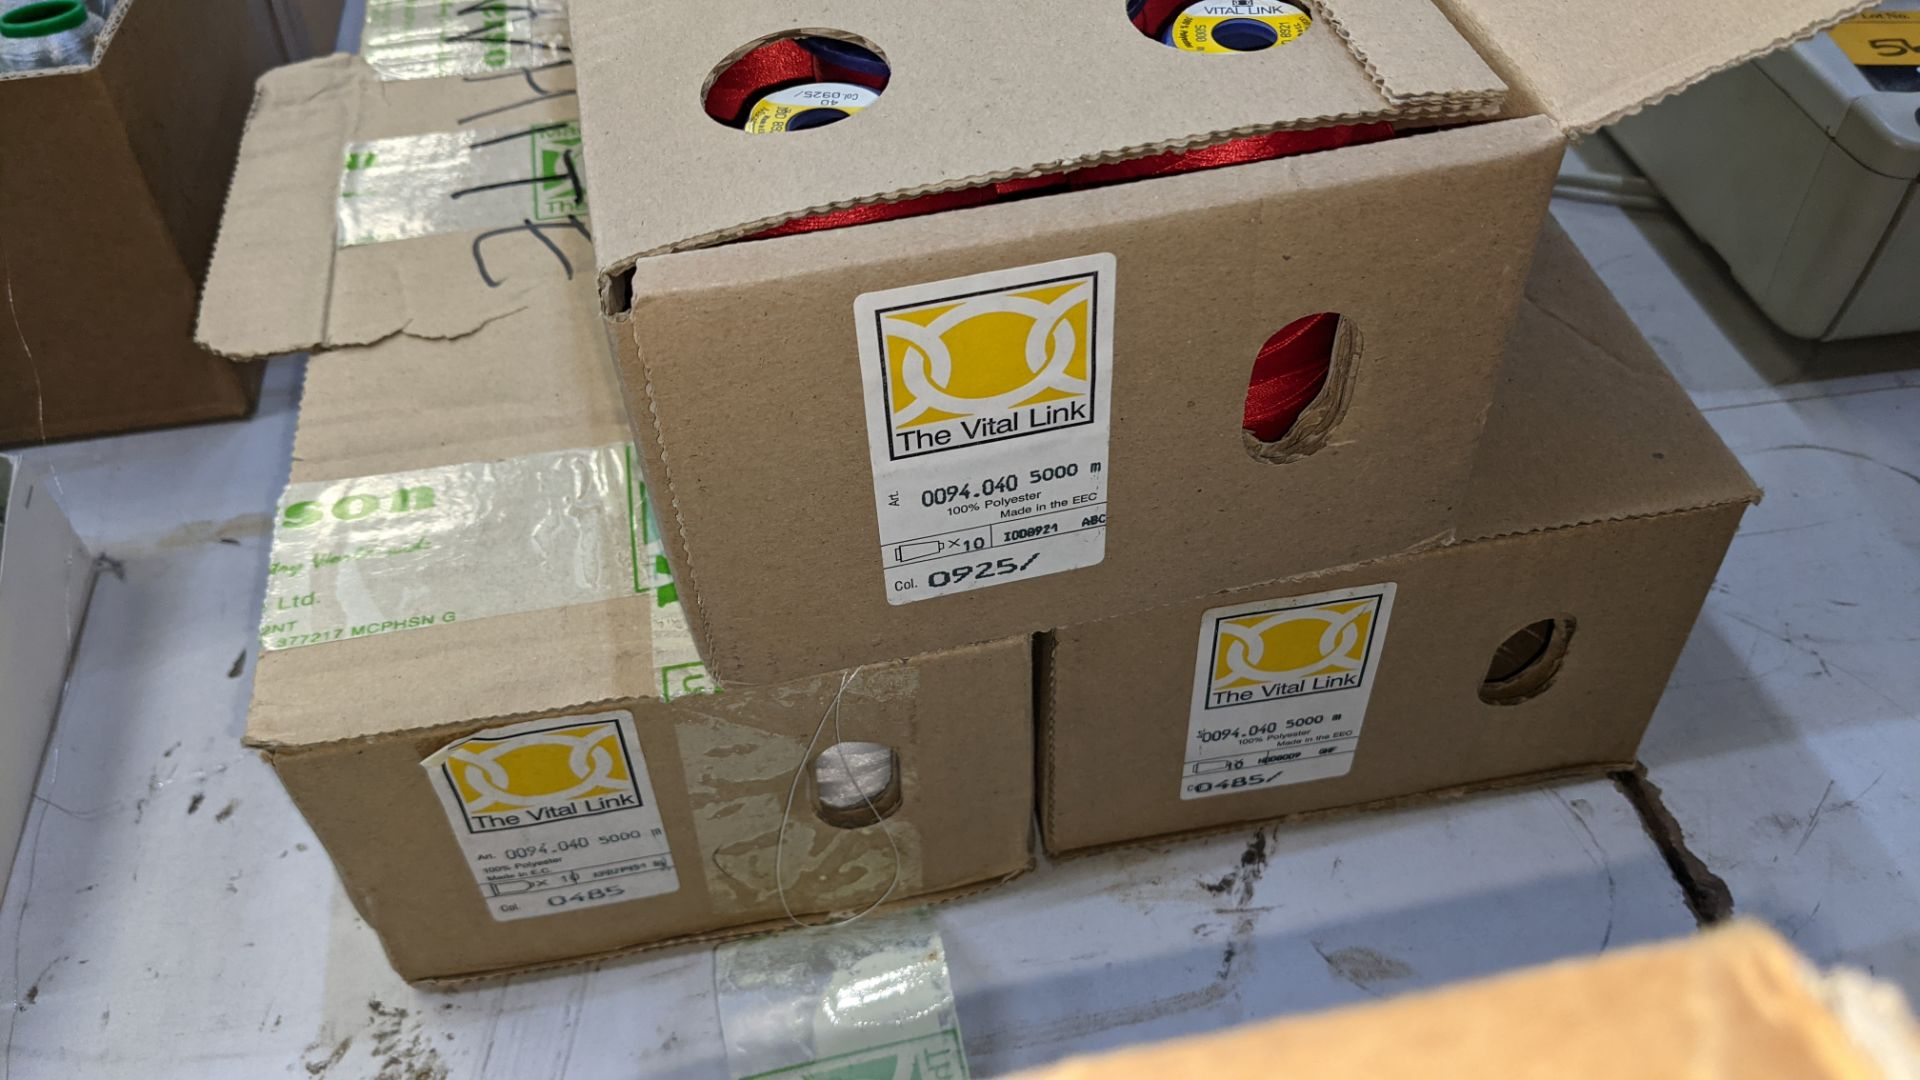 6 boxes of The Vital Link polyester embroidery thread - Image 7 of 7